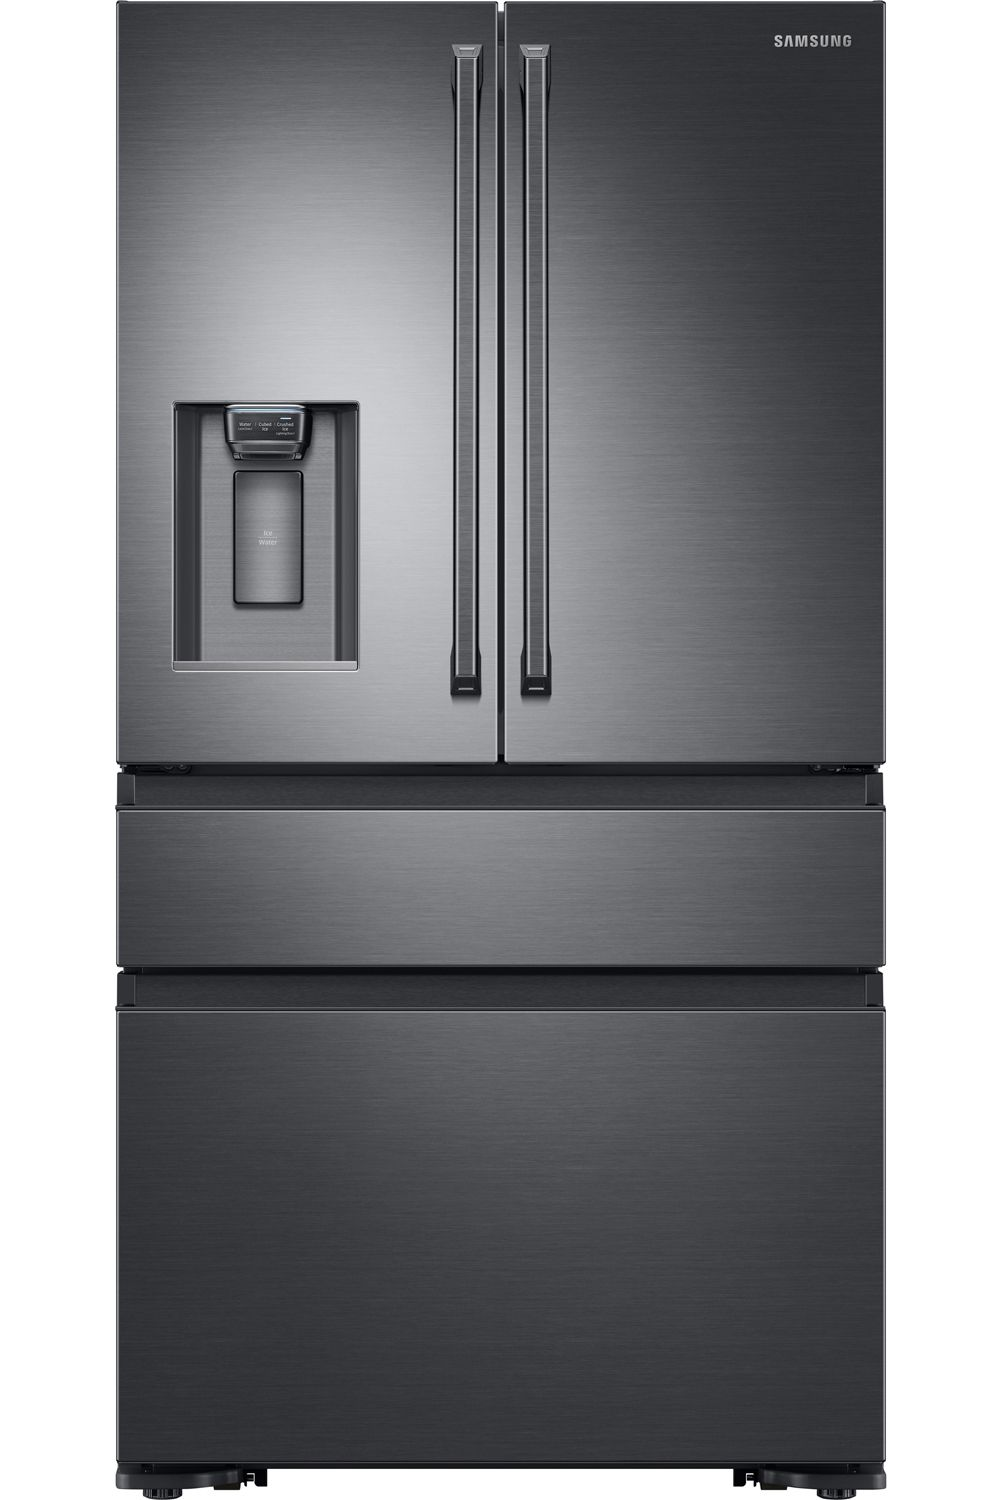 Samsung Black Stainless Counter Depth Rf23m8090sg